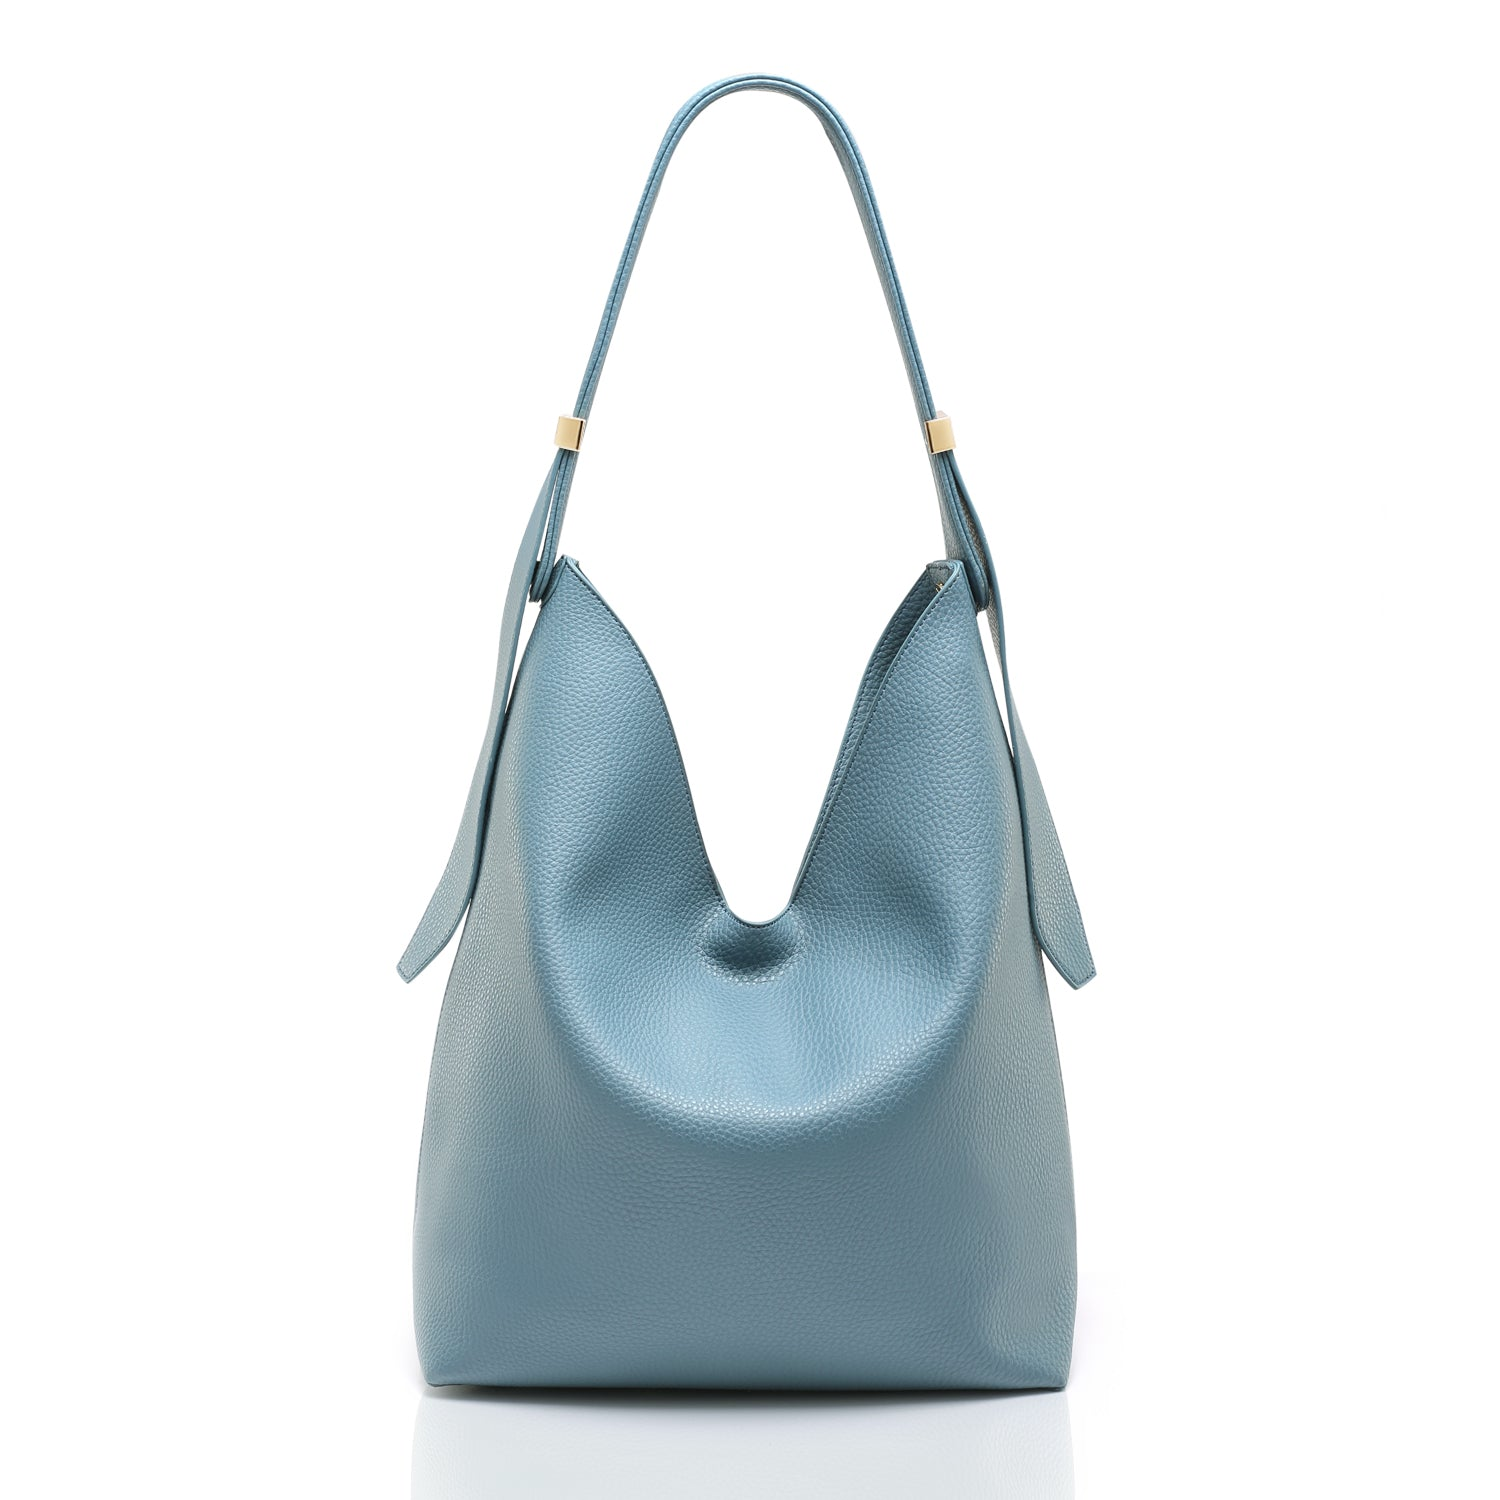 RIBAG HOBO - LAKE BLUE